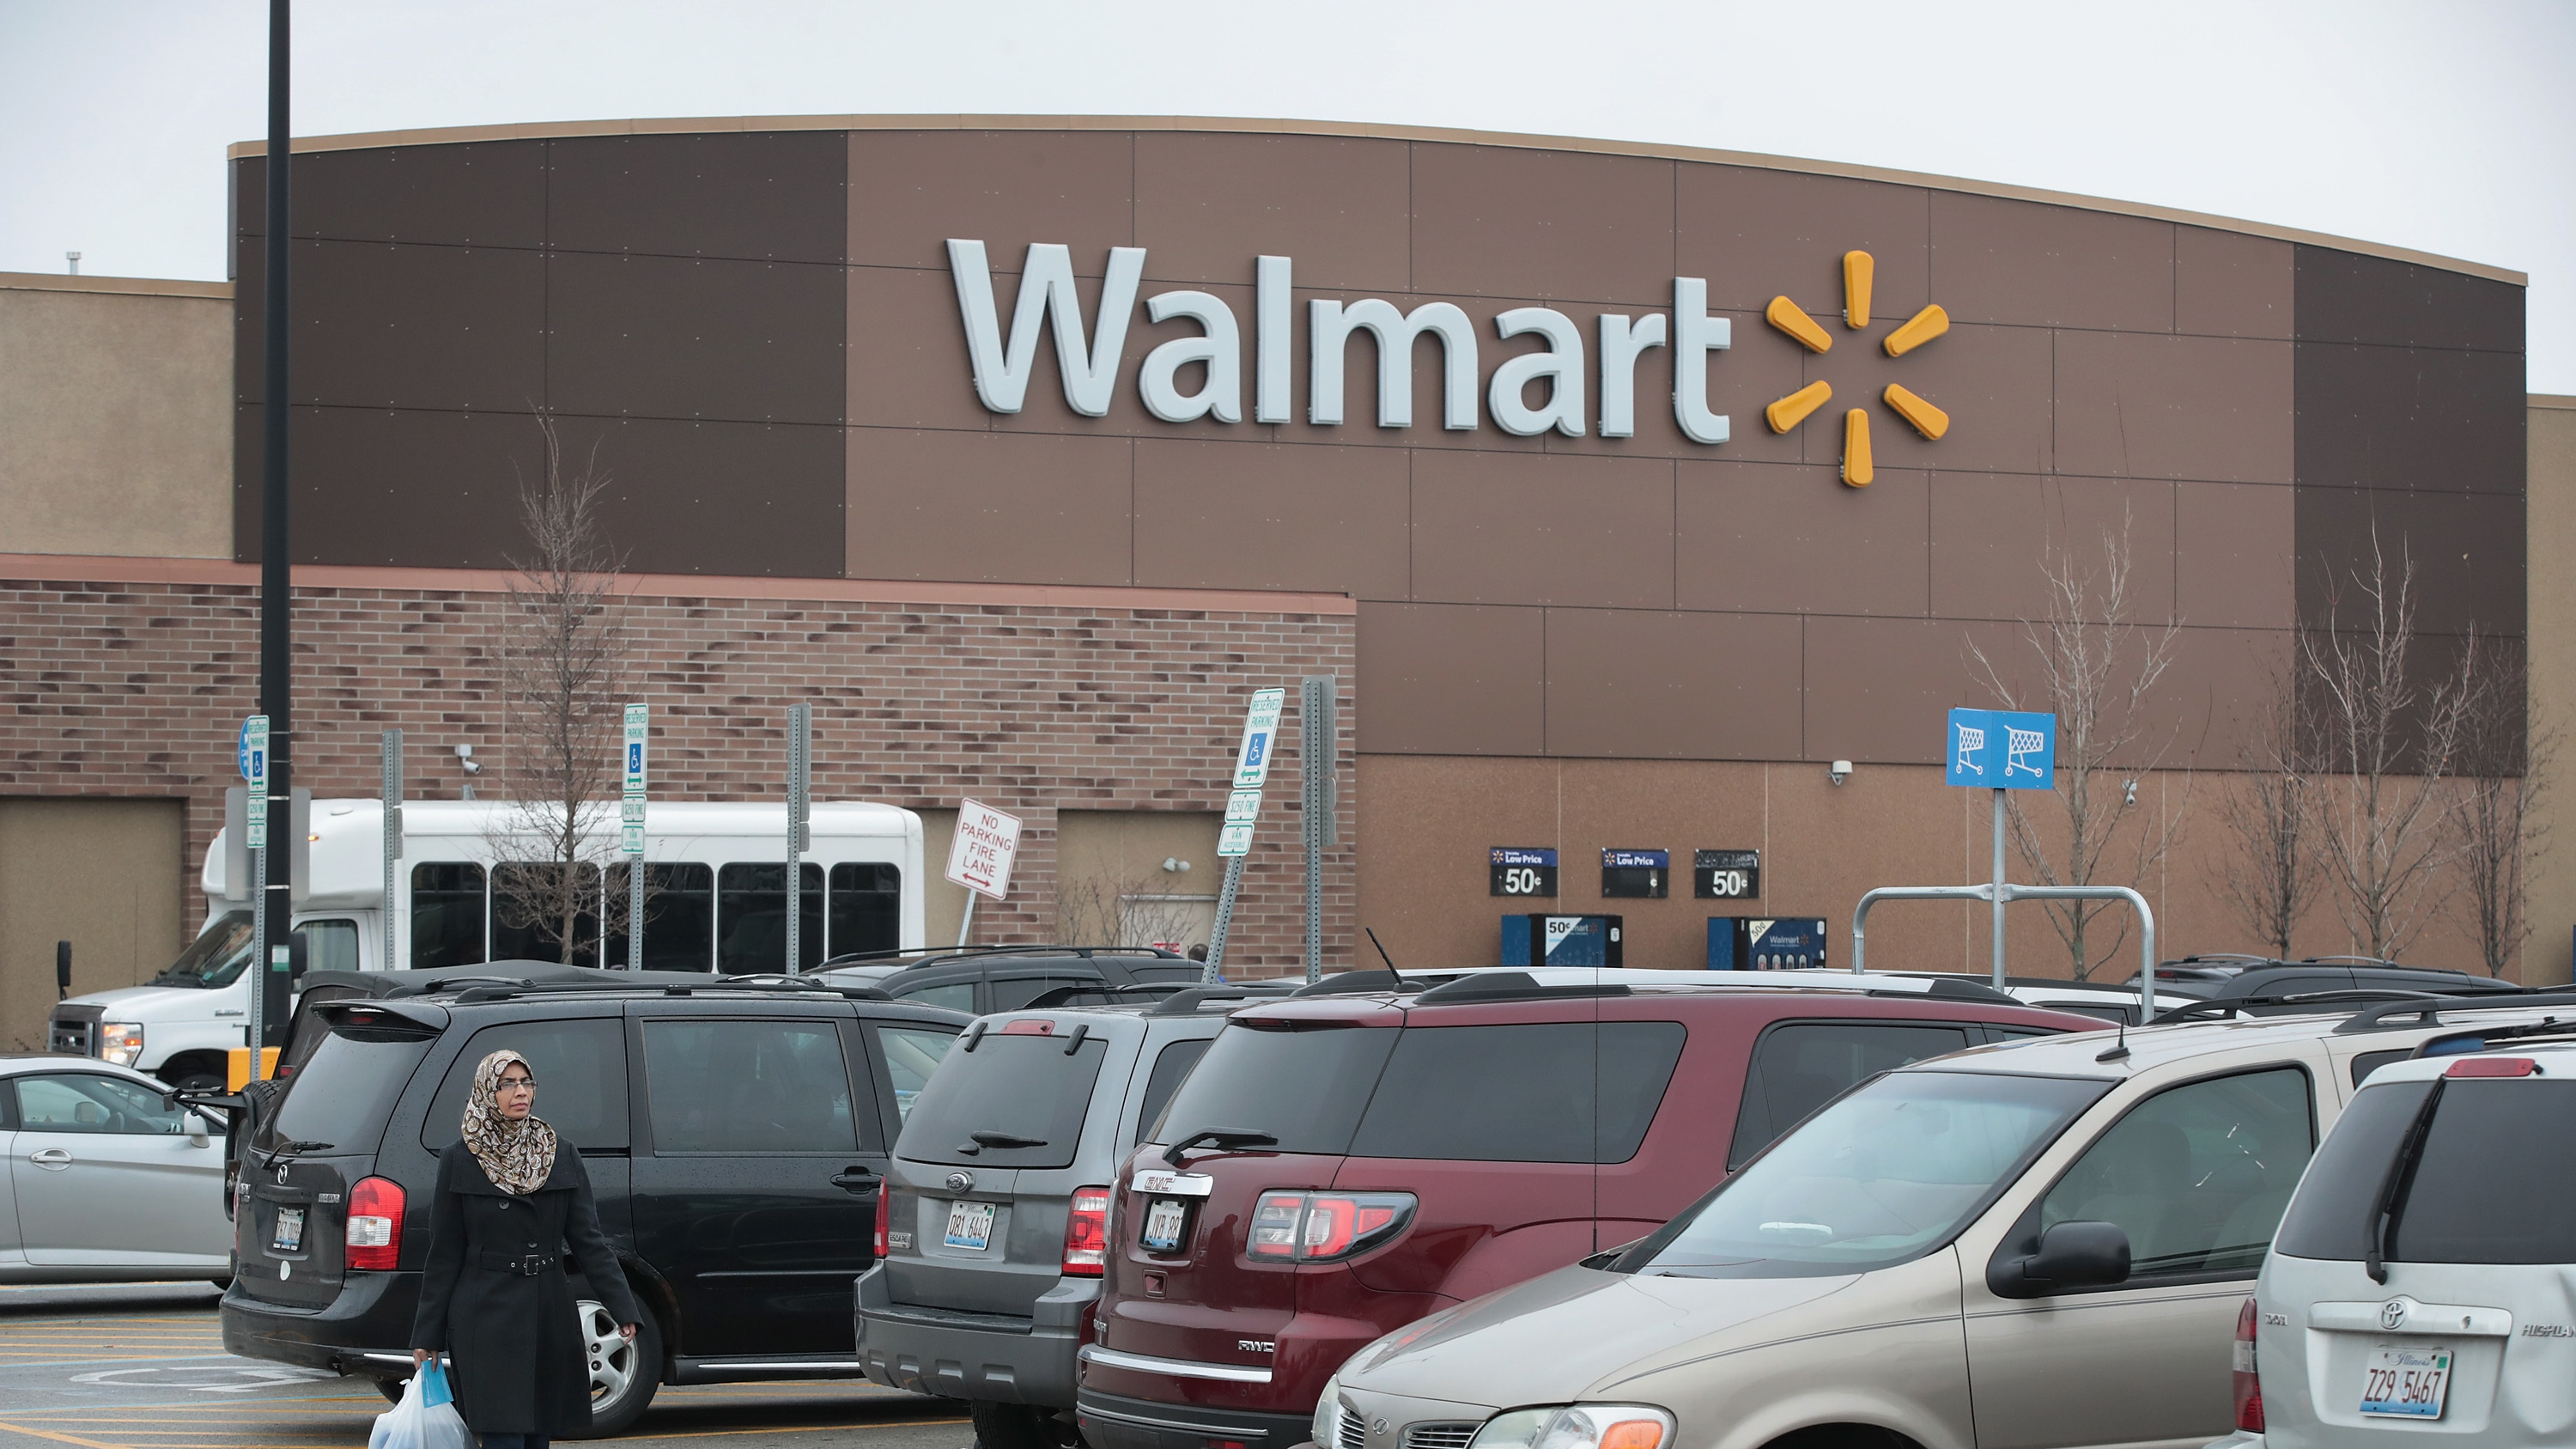 Walmart announces raises and bonuses - then closes some stores